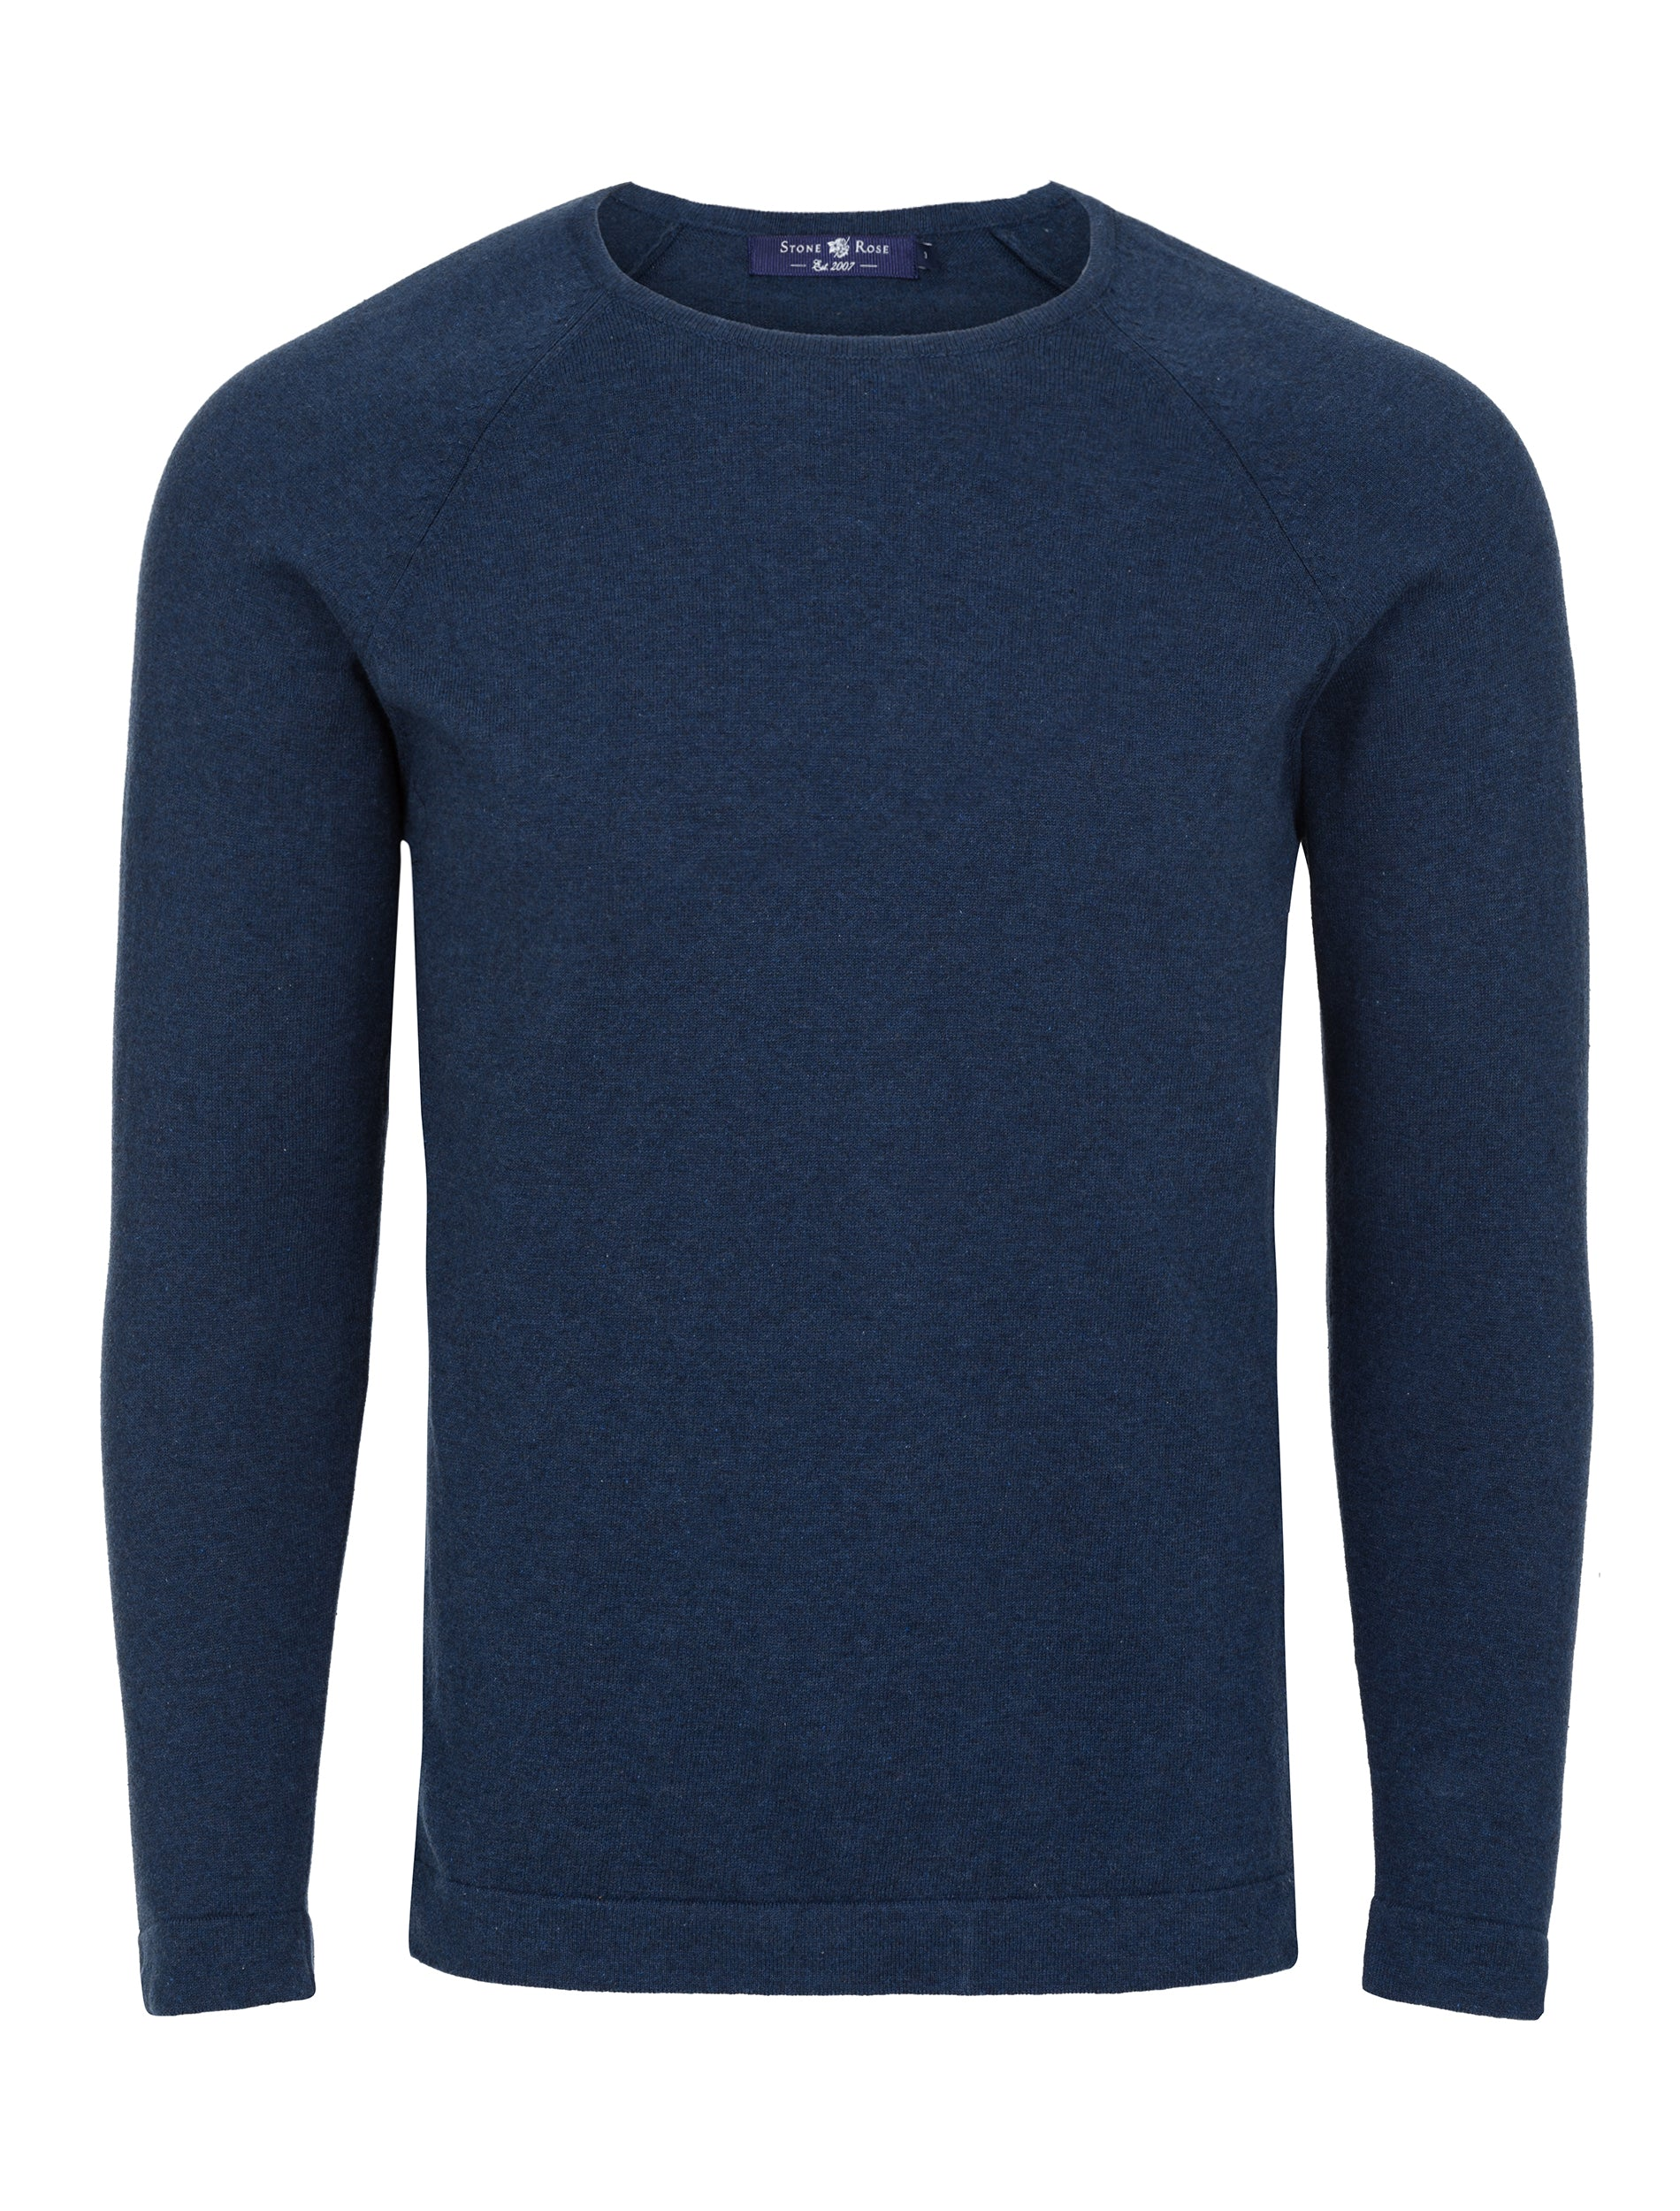 Navy Heather Knit Sweater-Stone Rose